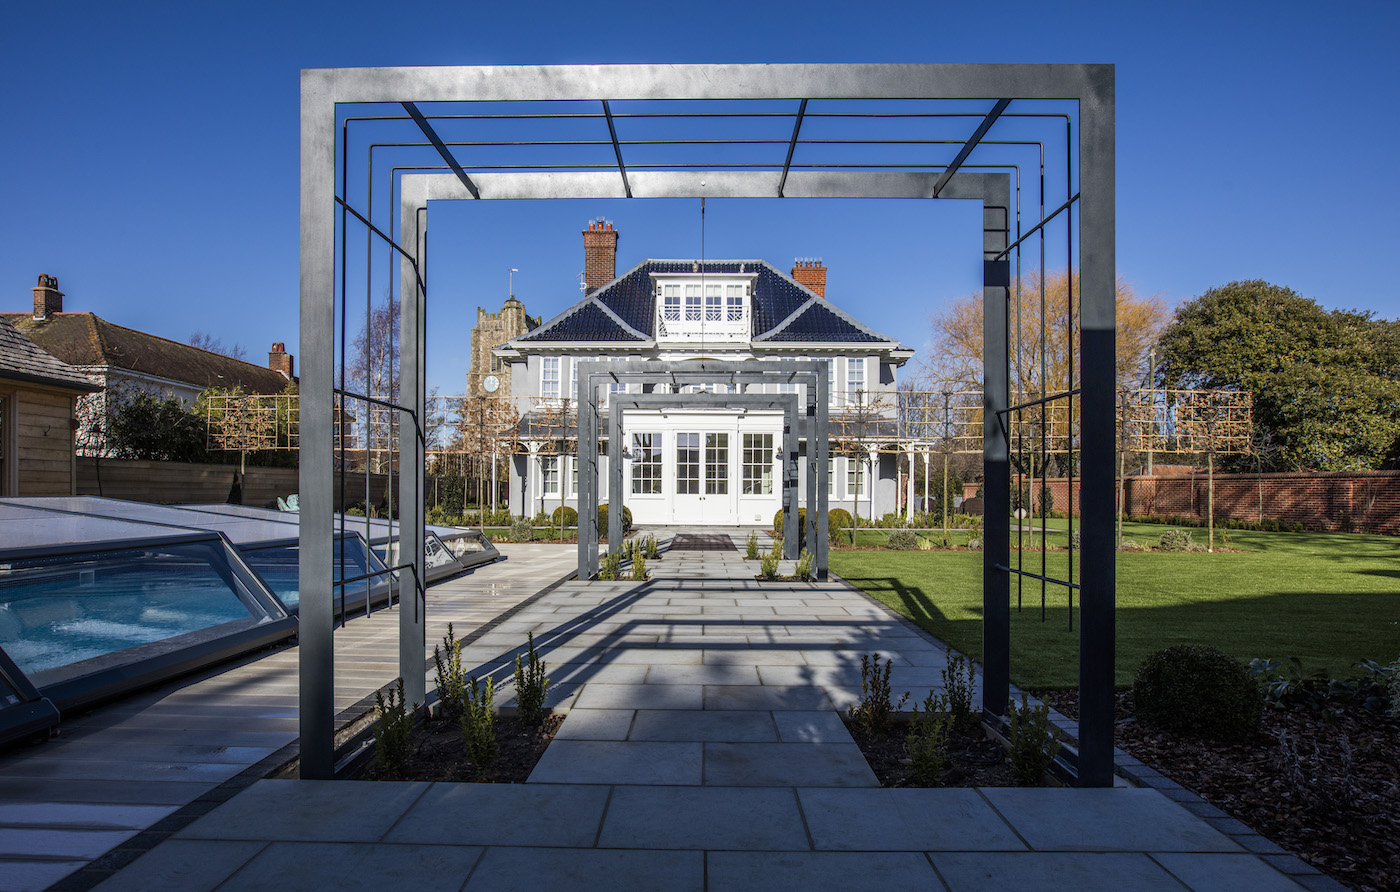 Colonial revival architecture